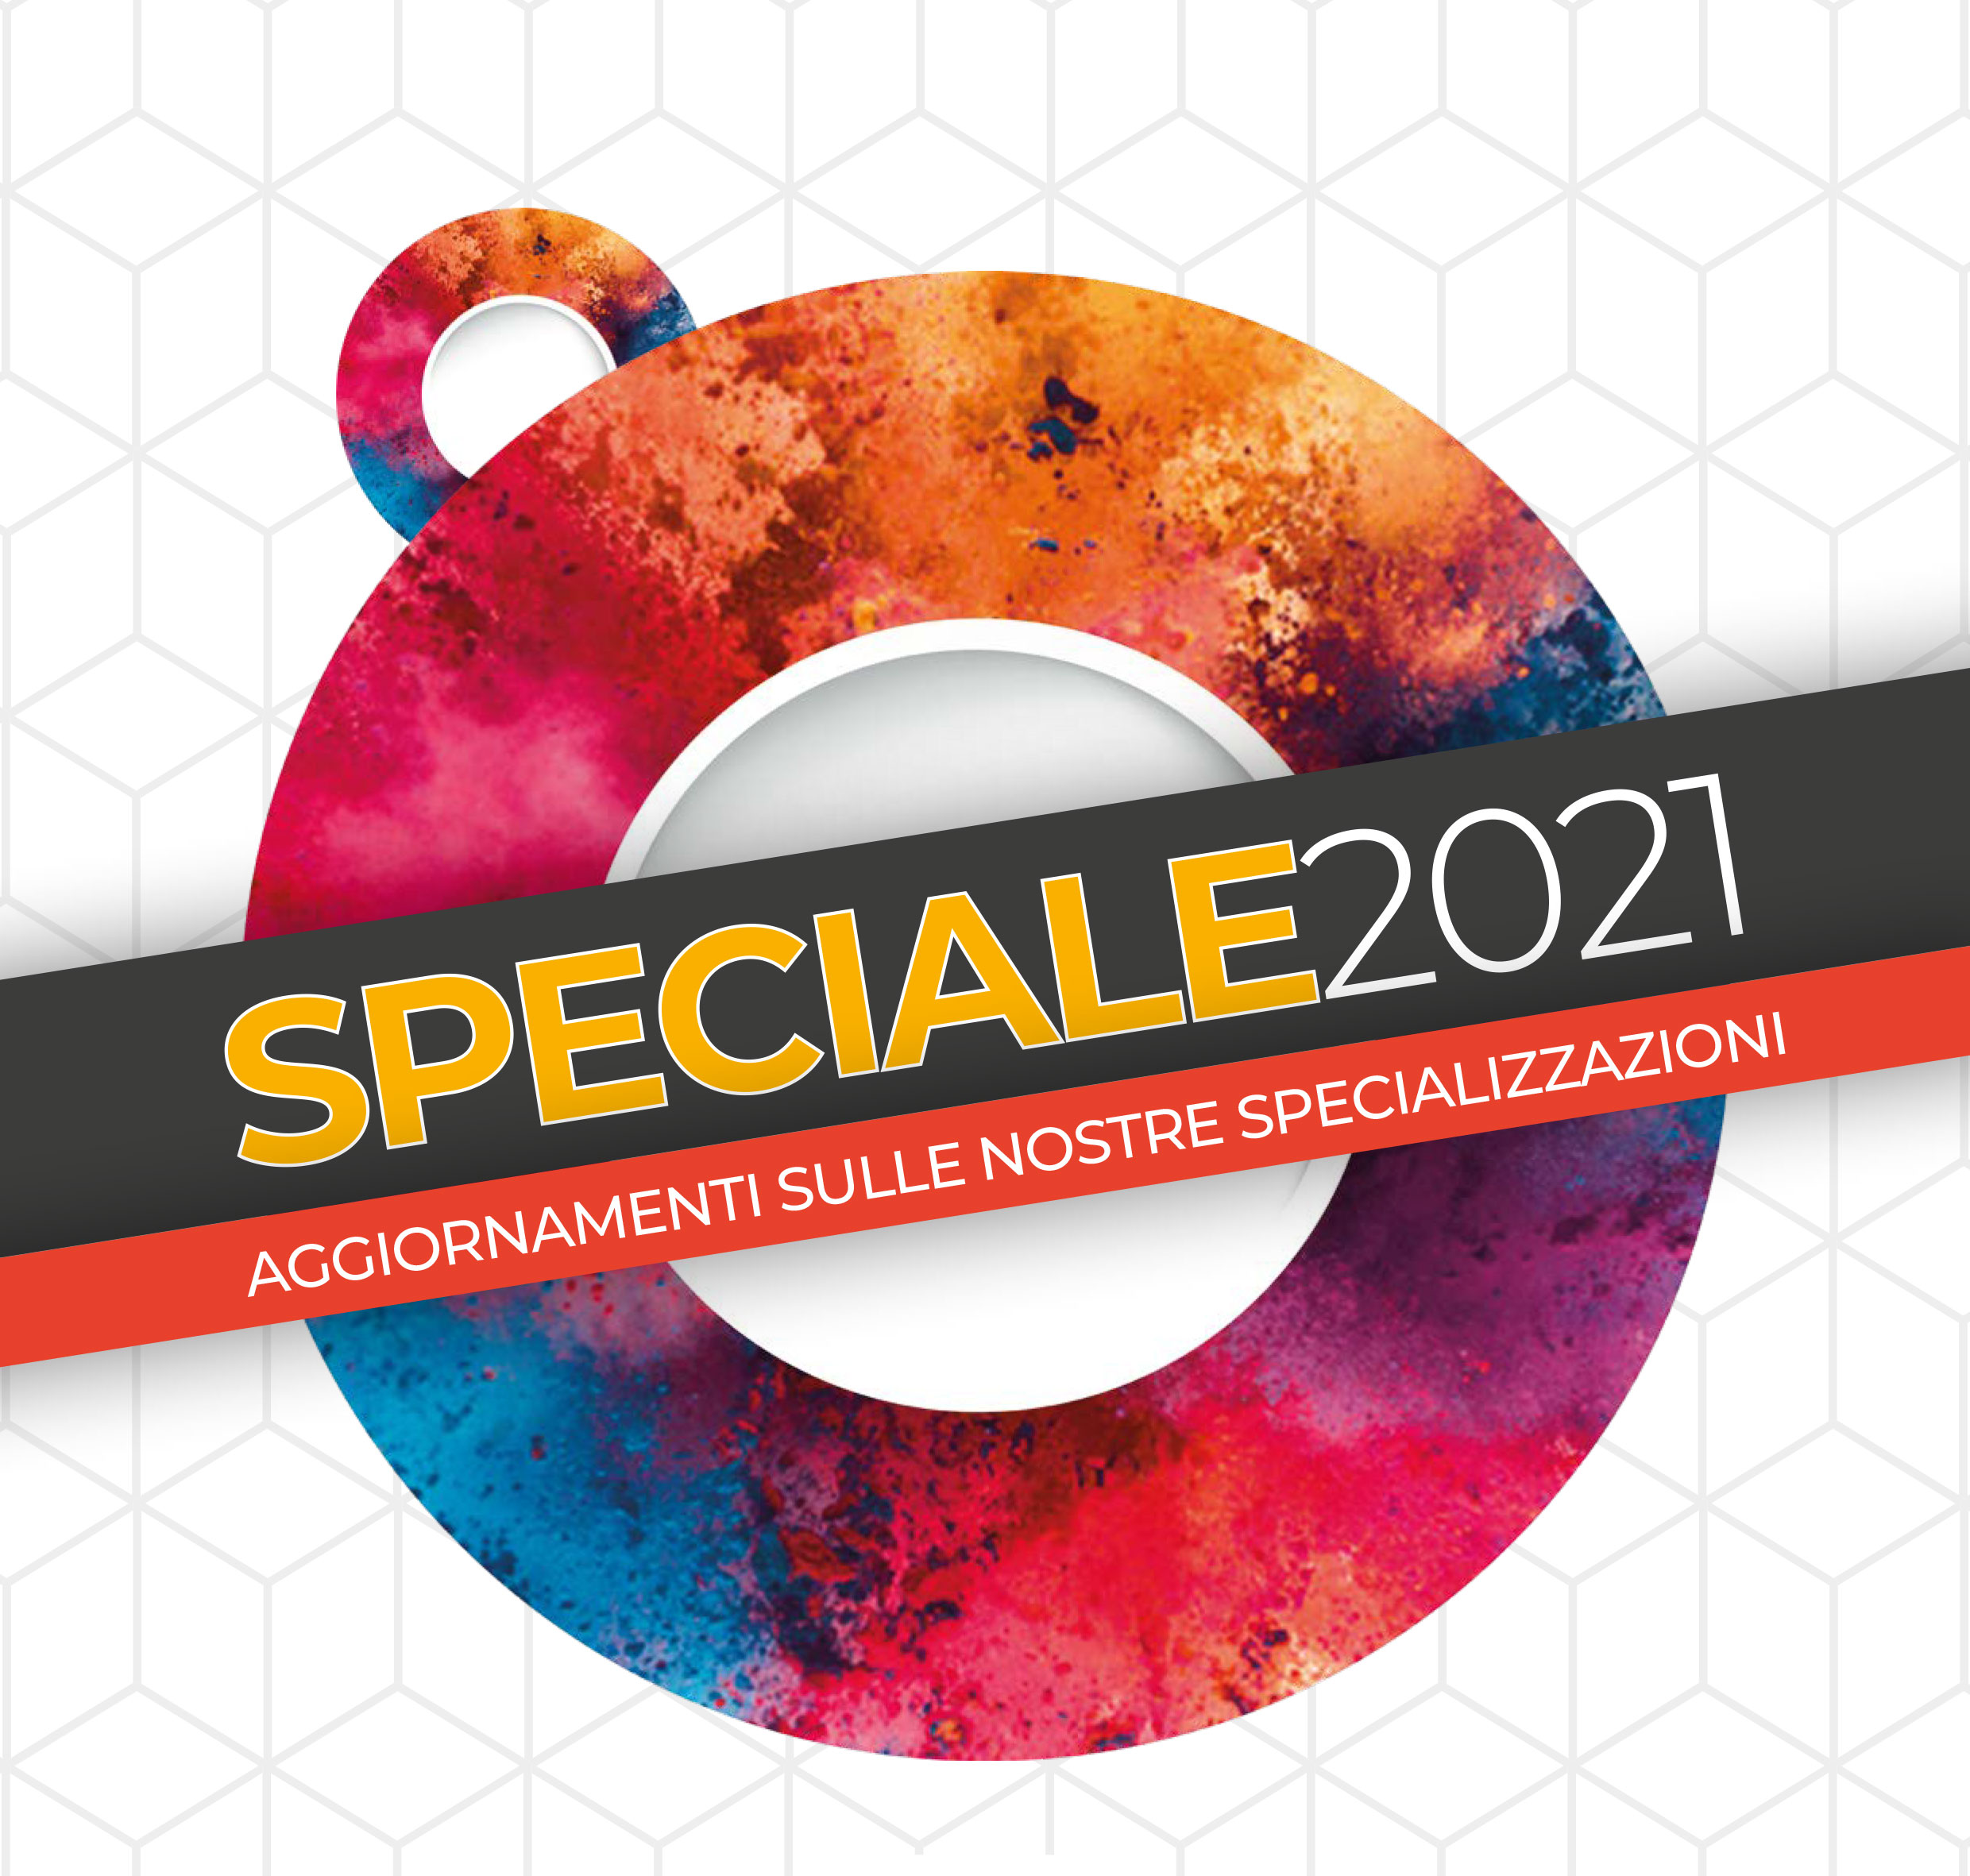 SPECIALE 2021